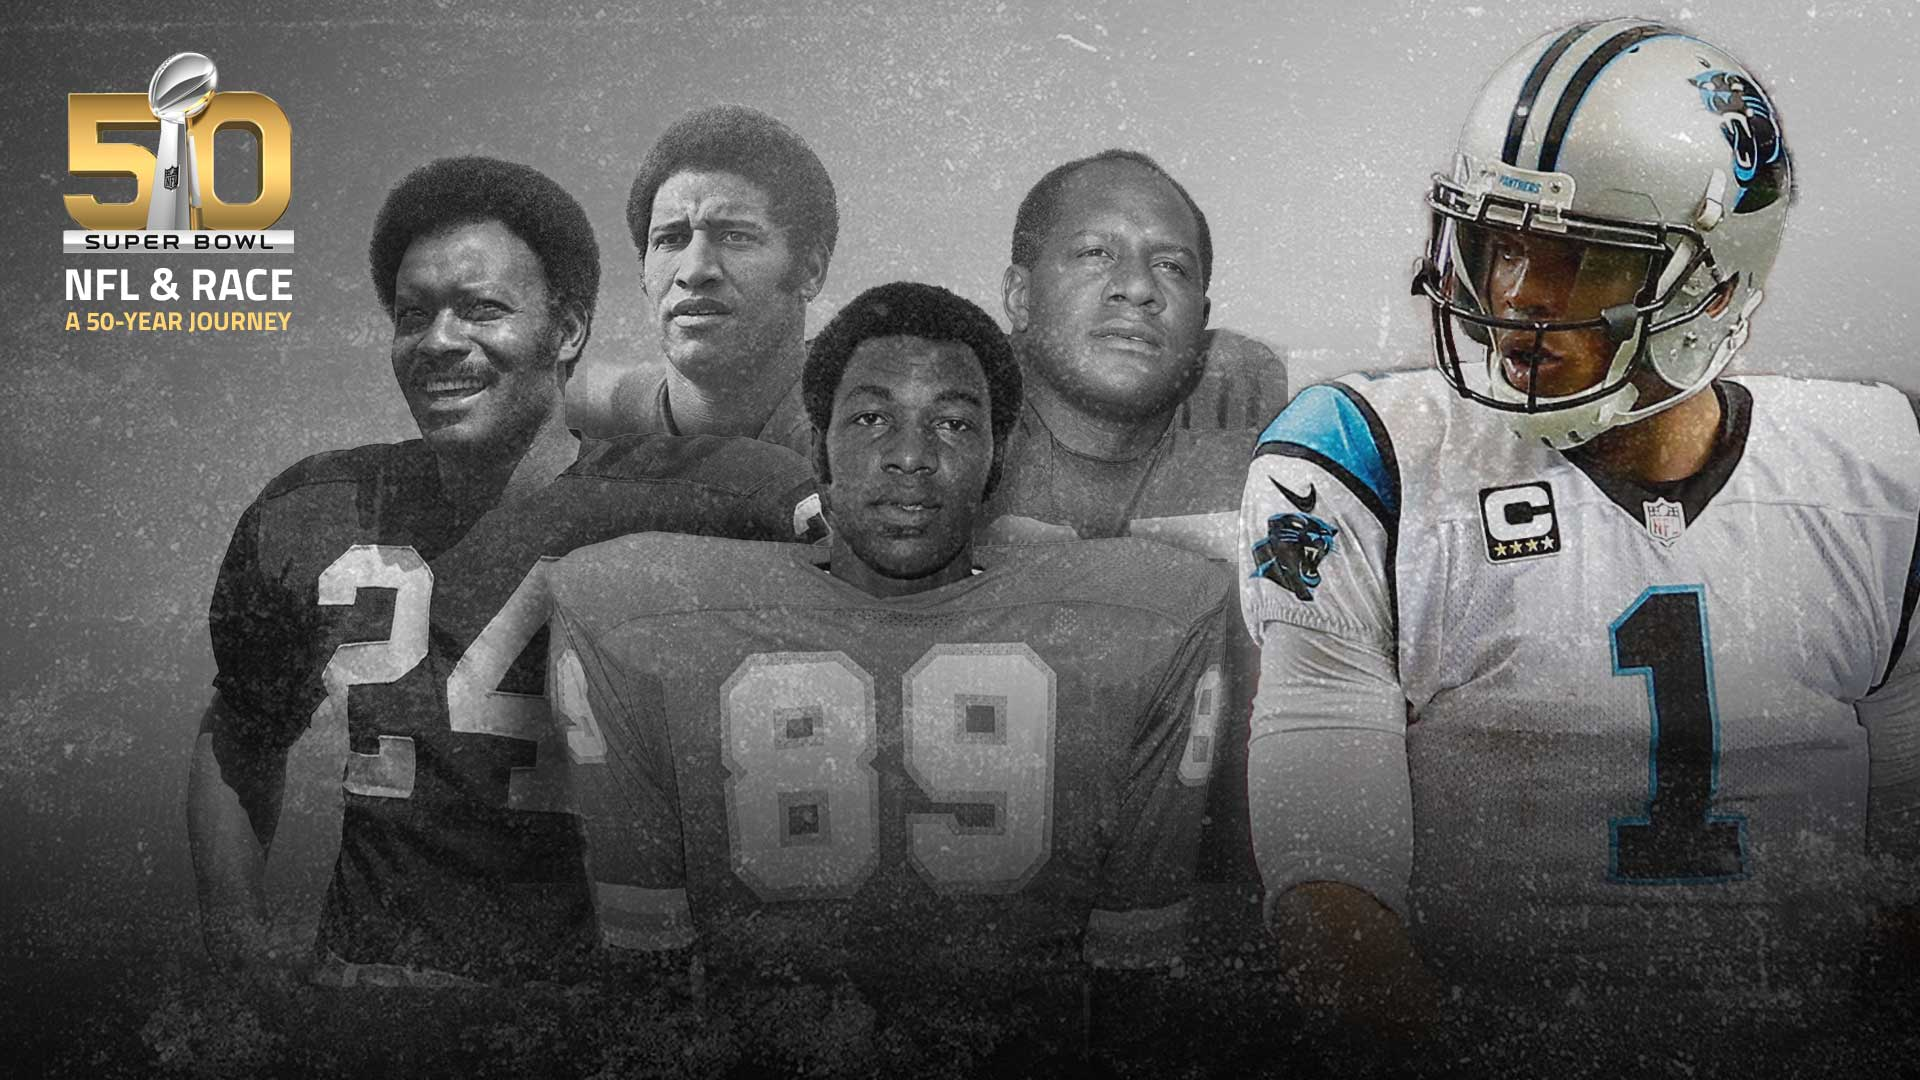 Super Bowl era began with black QBs, coaches, GMs too far away to imagine |  Sporting News